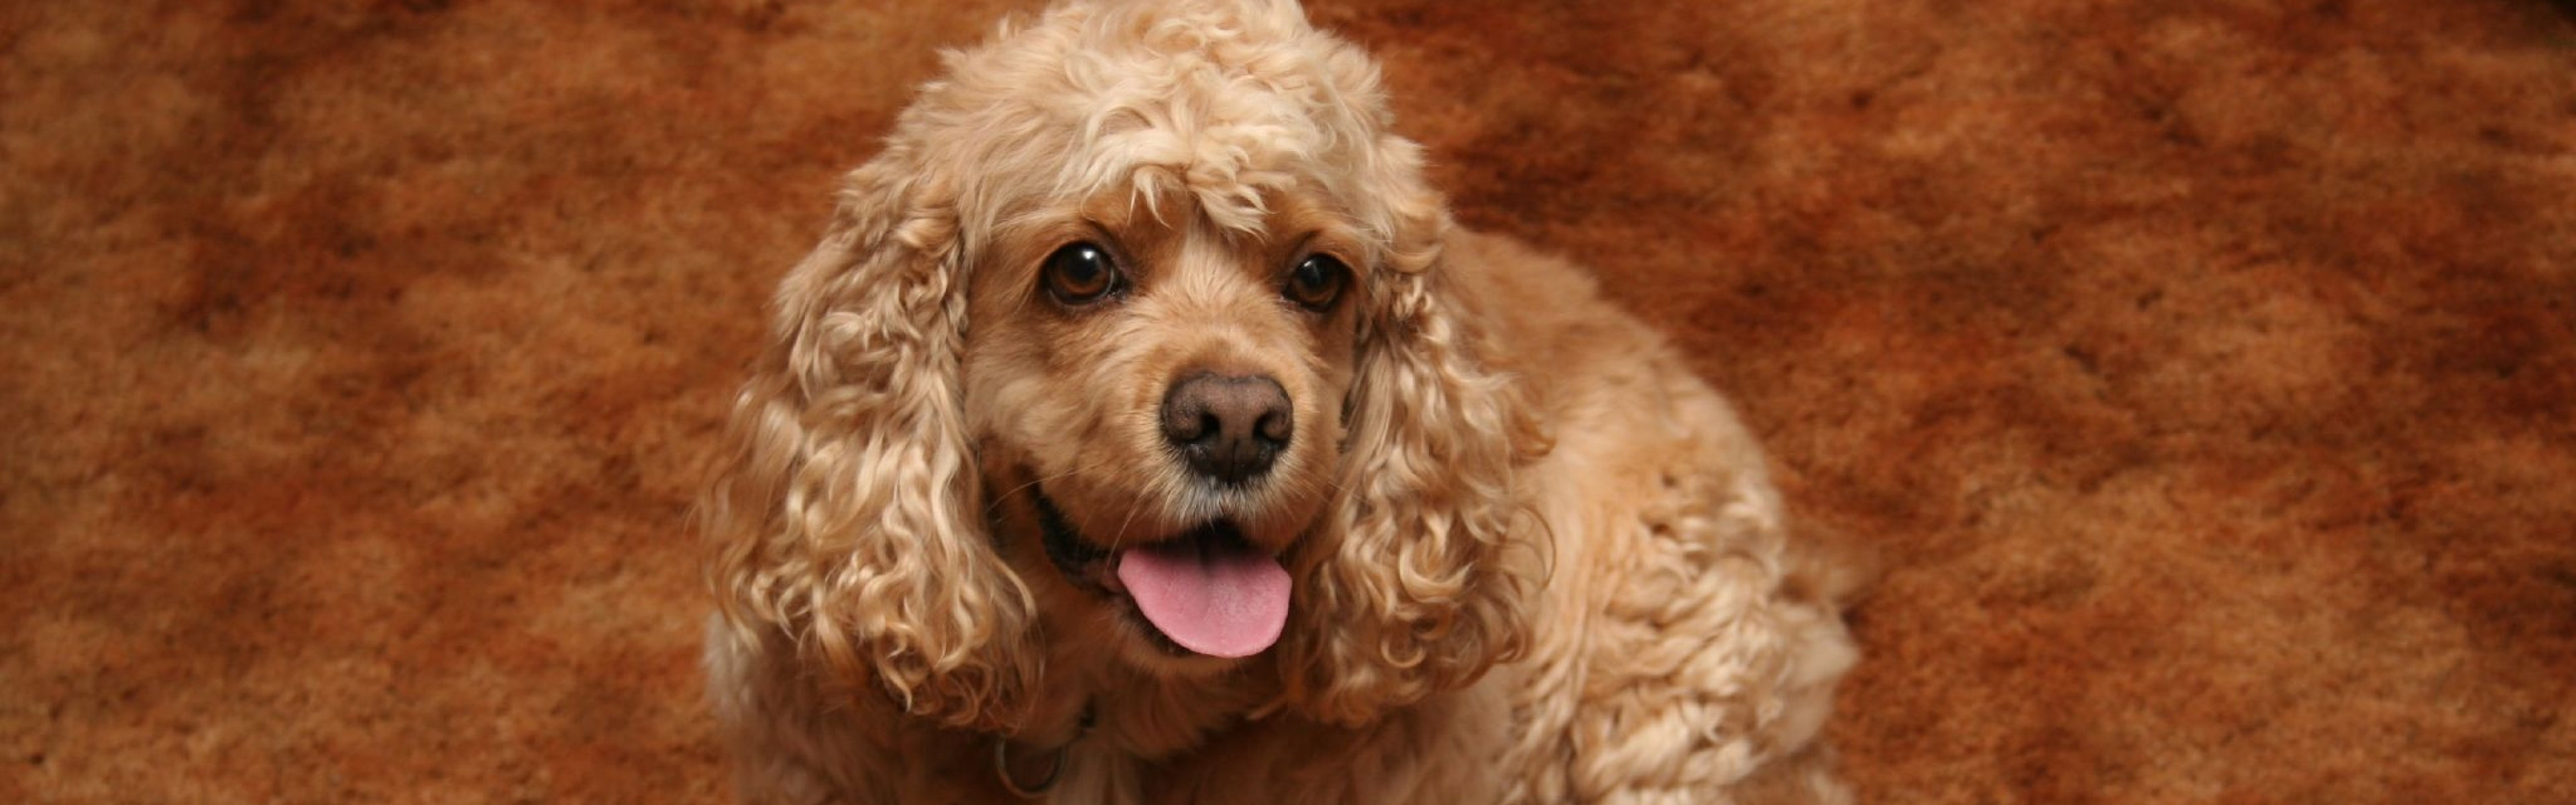 American Cocker Spaniel Widescreen